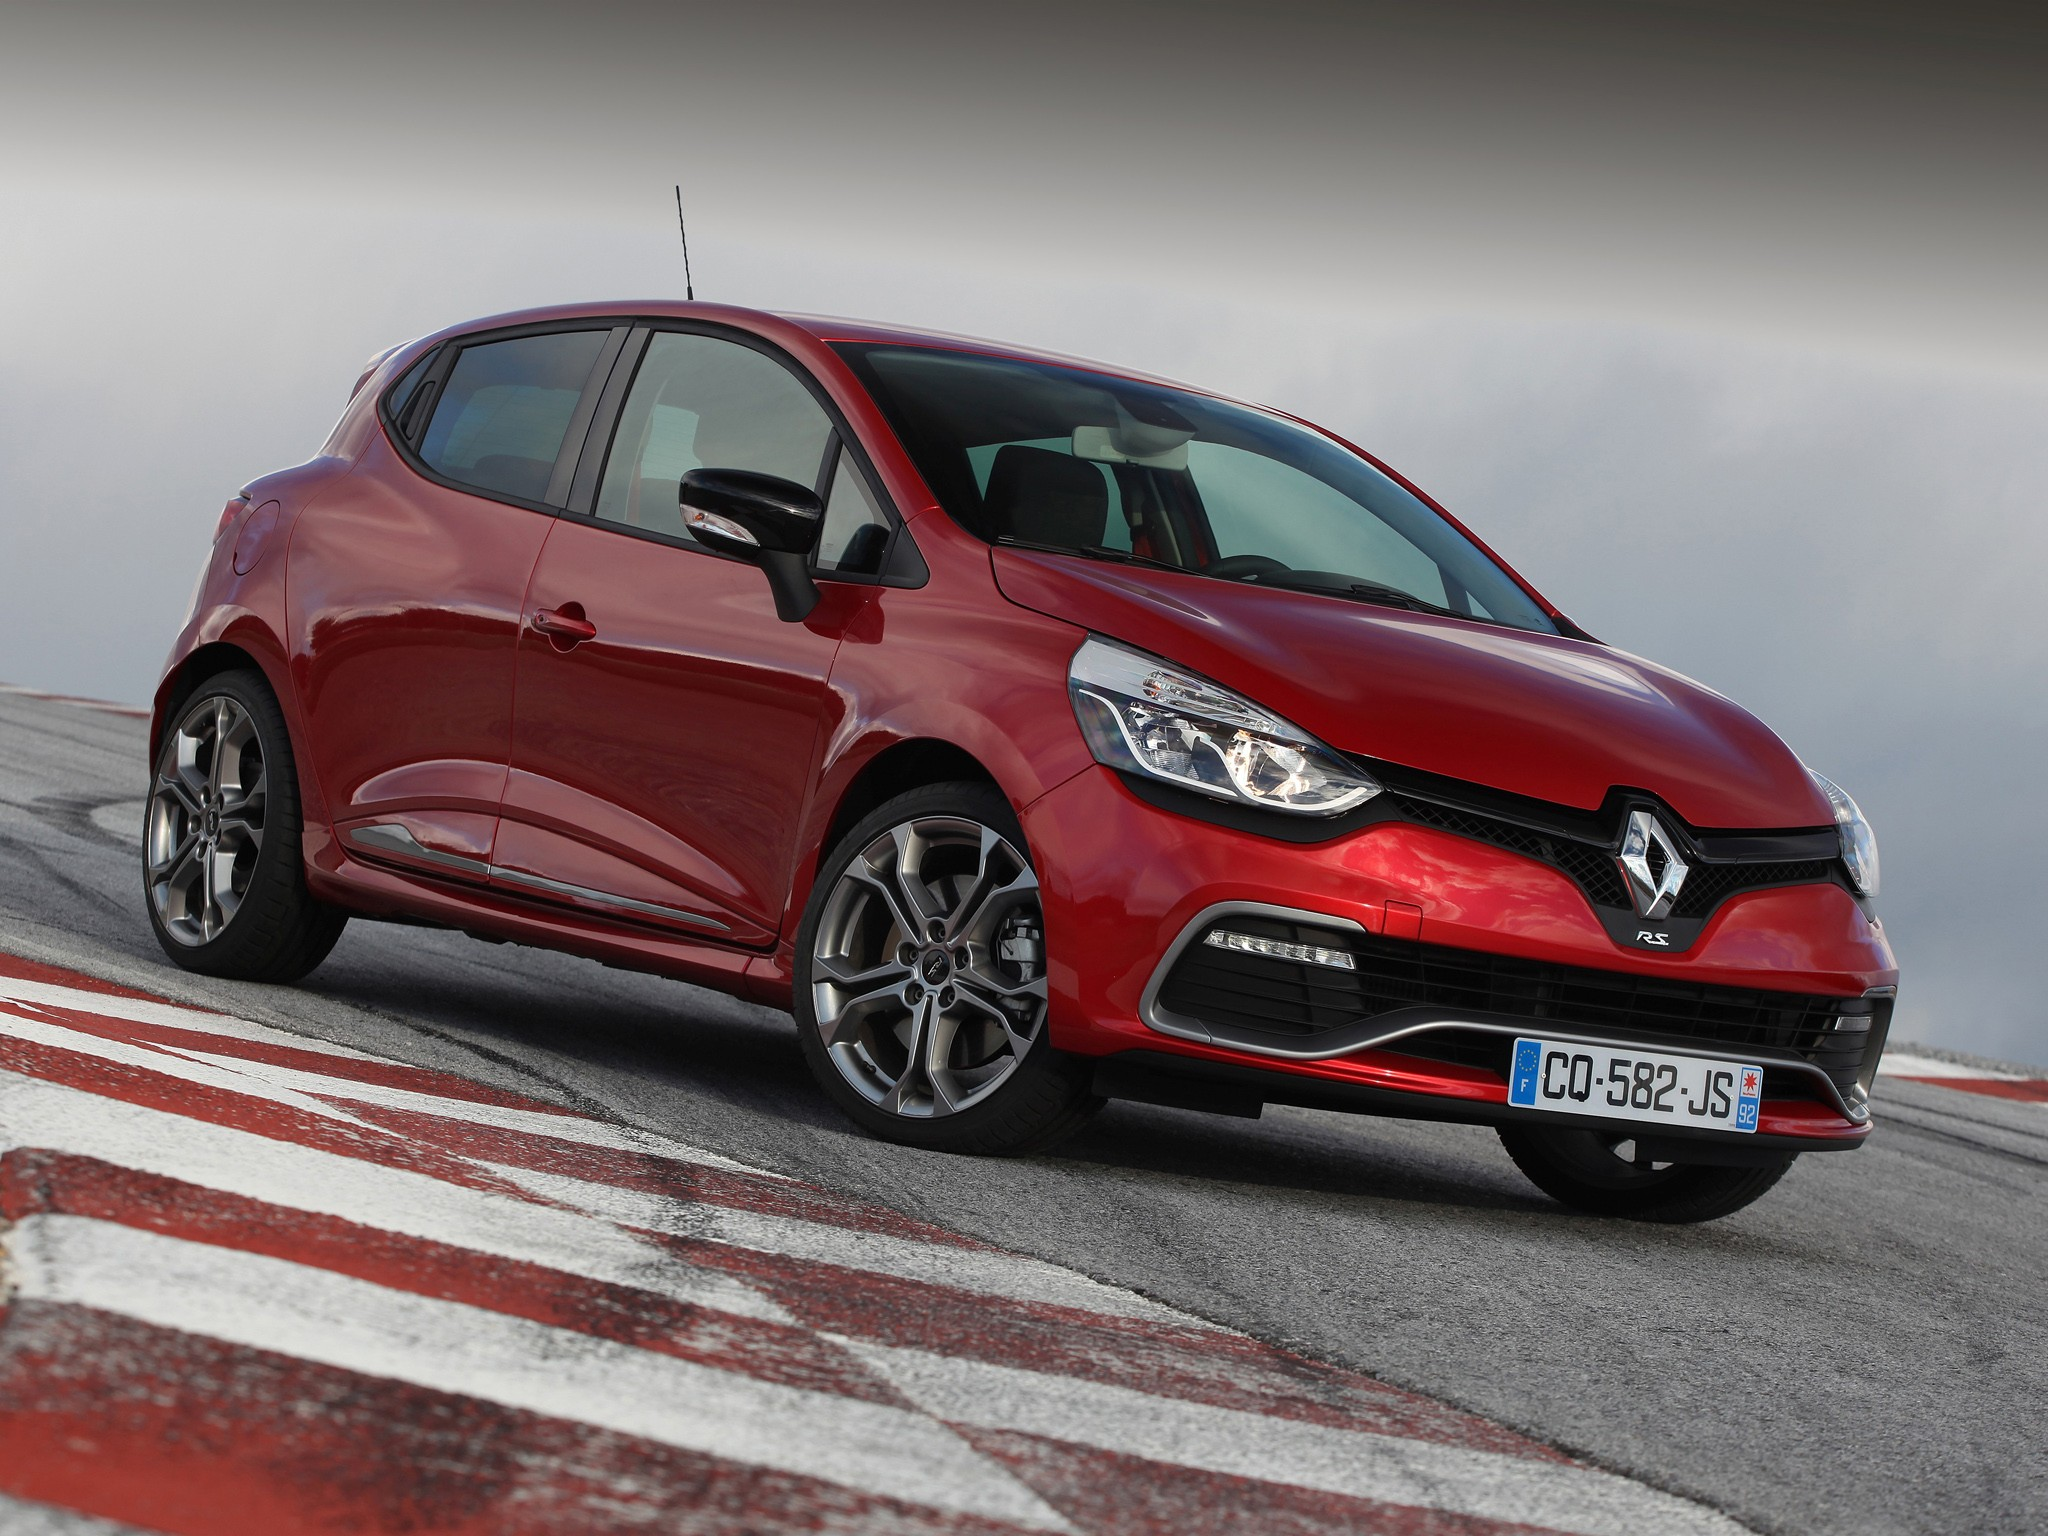 renault clio rs specs 2013 2014 2015 2016 2017 2018 autoevolution. Black Bedroom Furniture Sets. Home Design Ideas